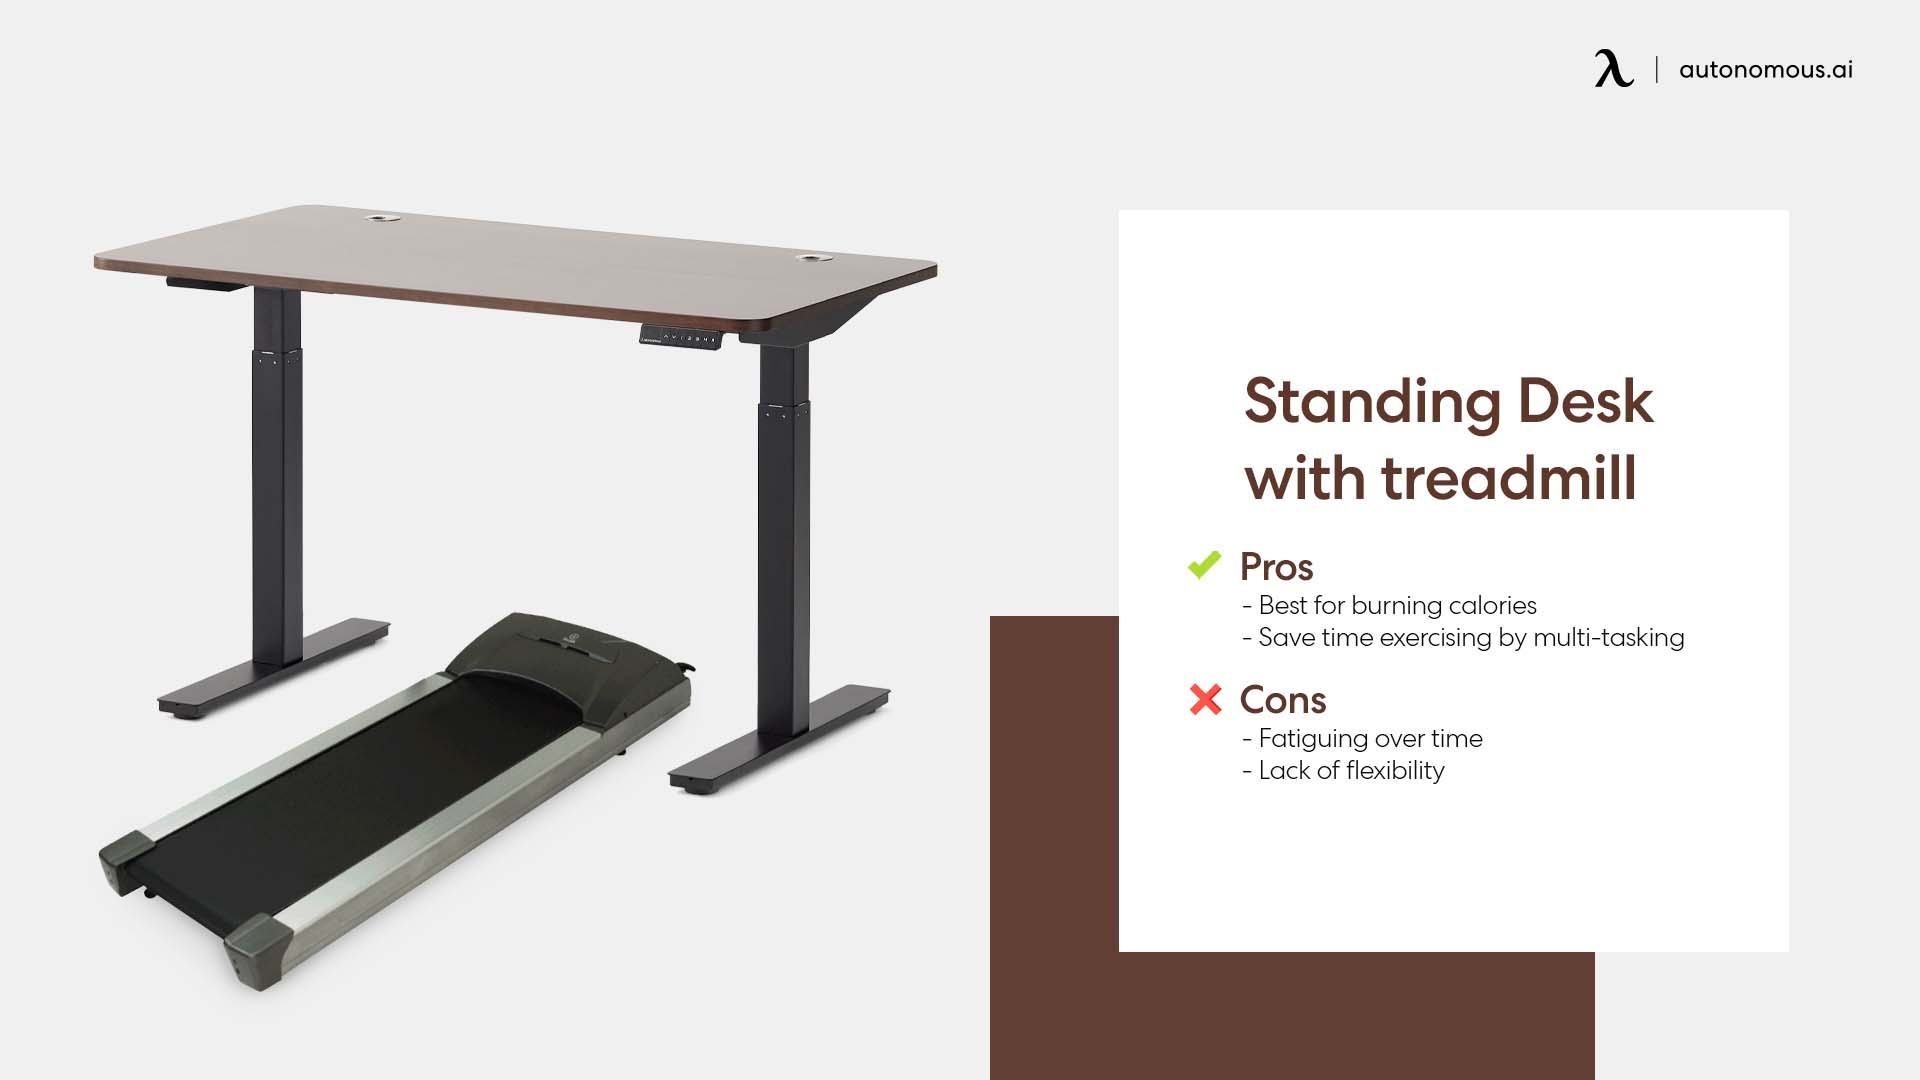 Photo of standing desk with treadmill